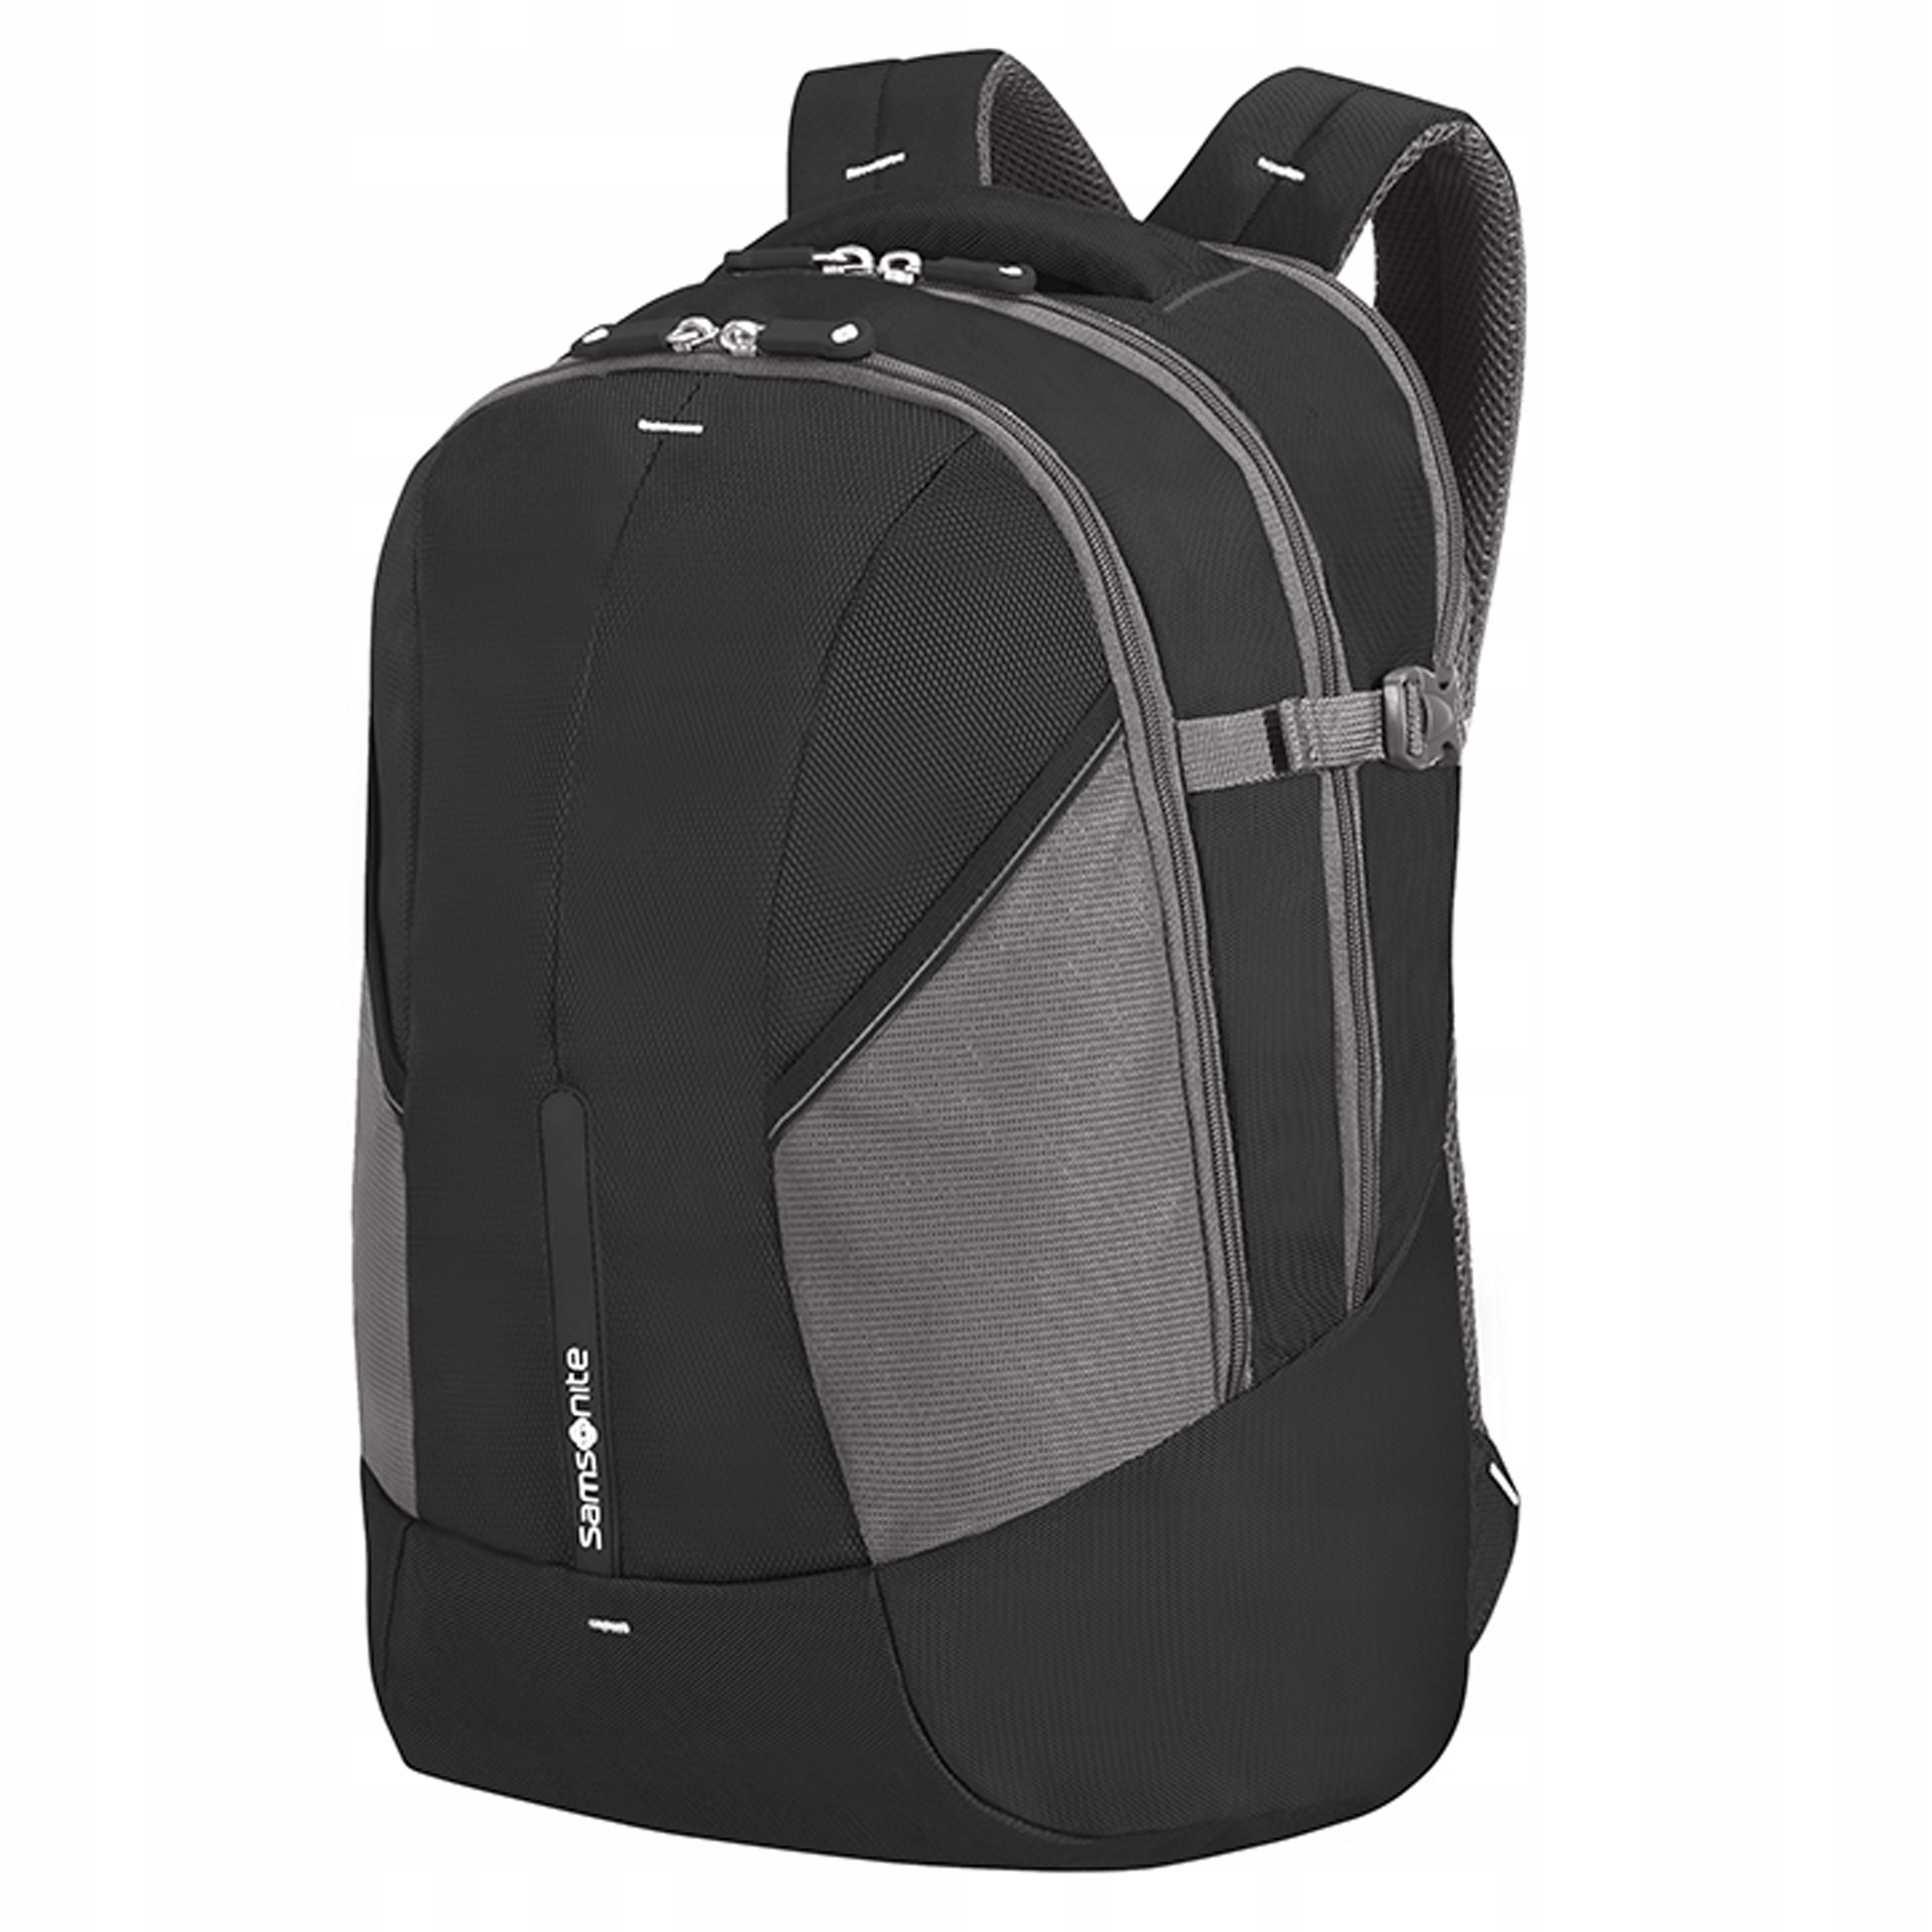 6136270e86725 Plecak Samsonite 4mation laptopa 16'' 37N 09 002 - 7586314328 ...